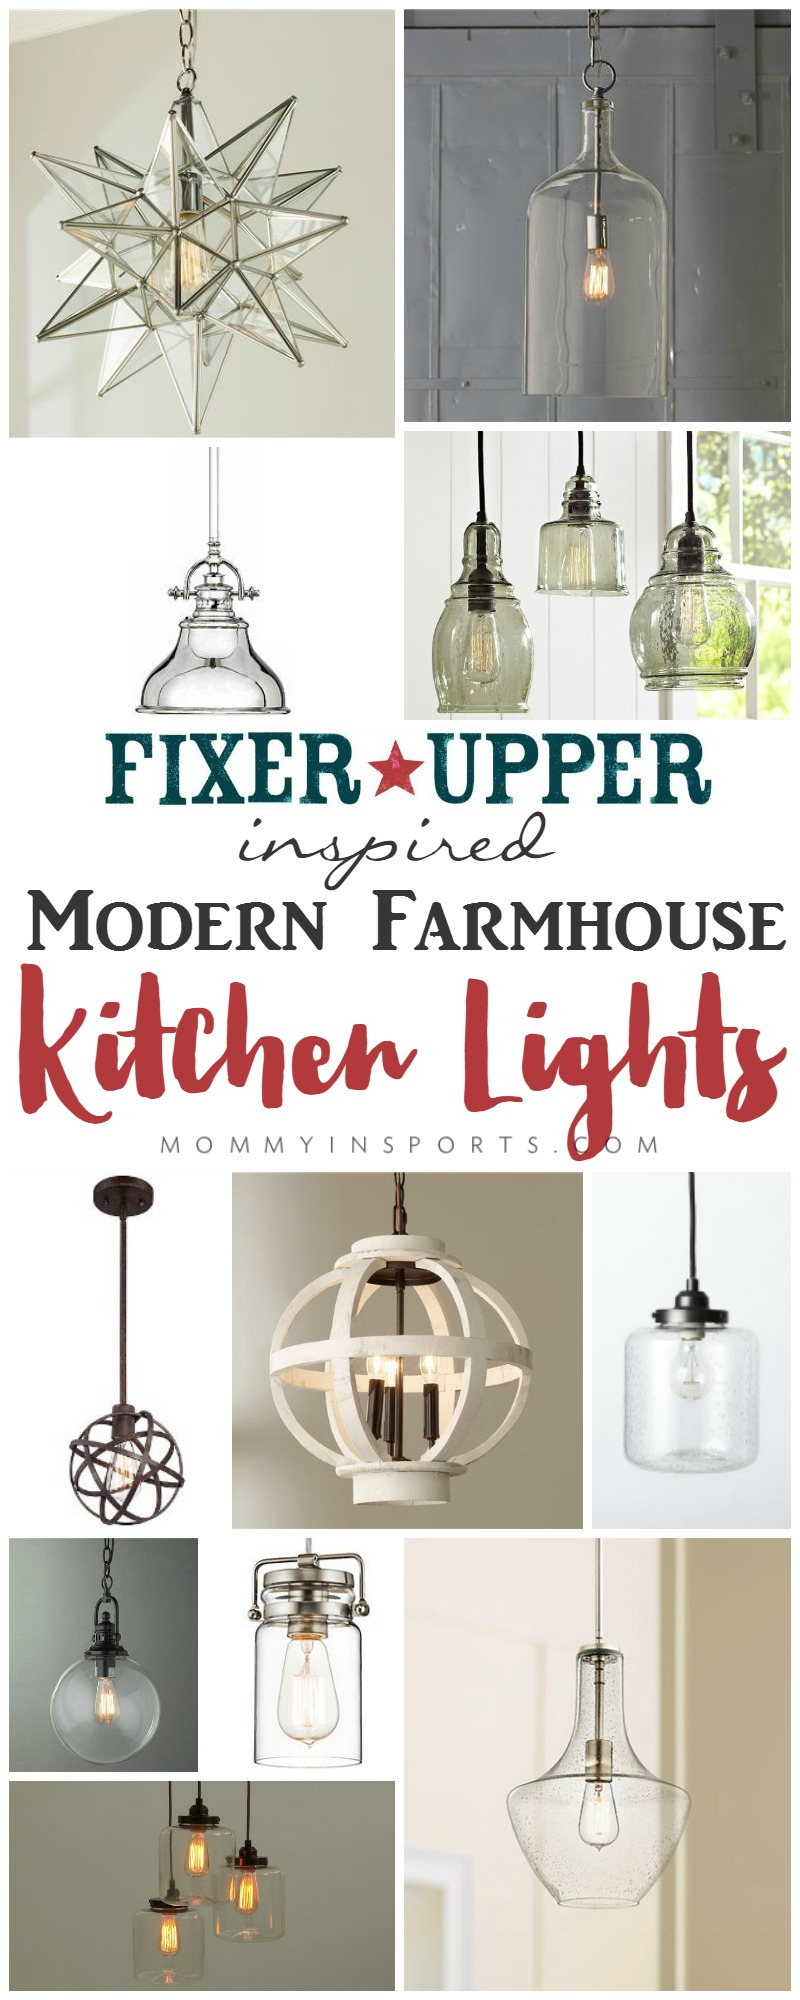 Looking for a Fixer Upper inspired Modern Farmhouse kitchen light? Check out this list of  sc 1 st  Kristen Hewitt & Fixer Upper Inspired Modern Farmhouse Kitchen Lights - Kristen Hewitt